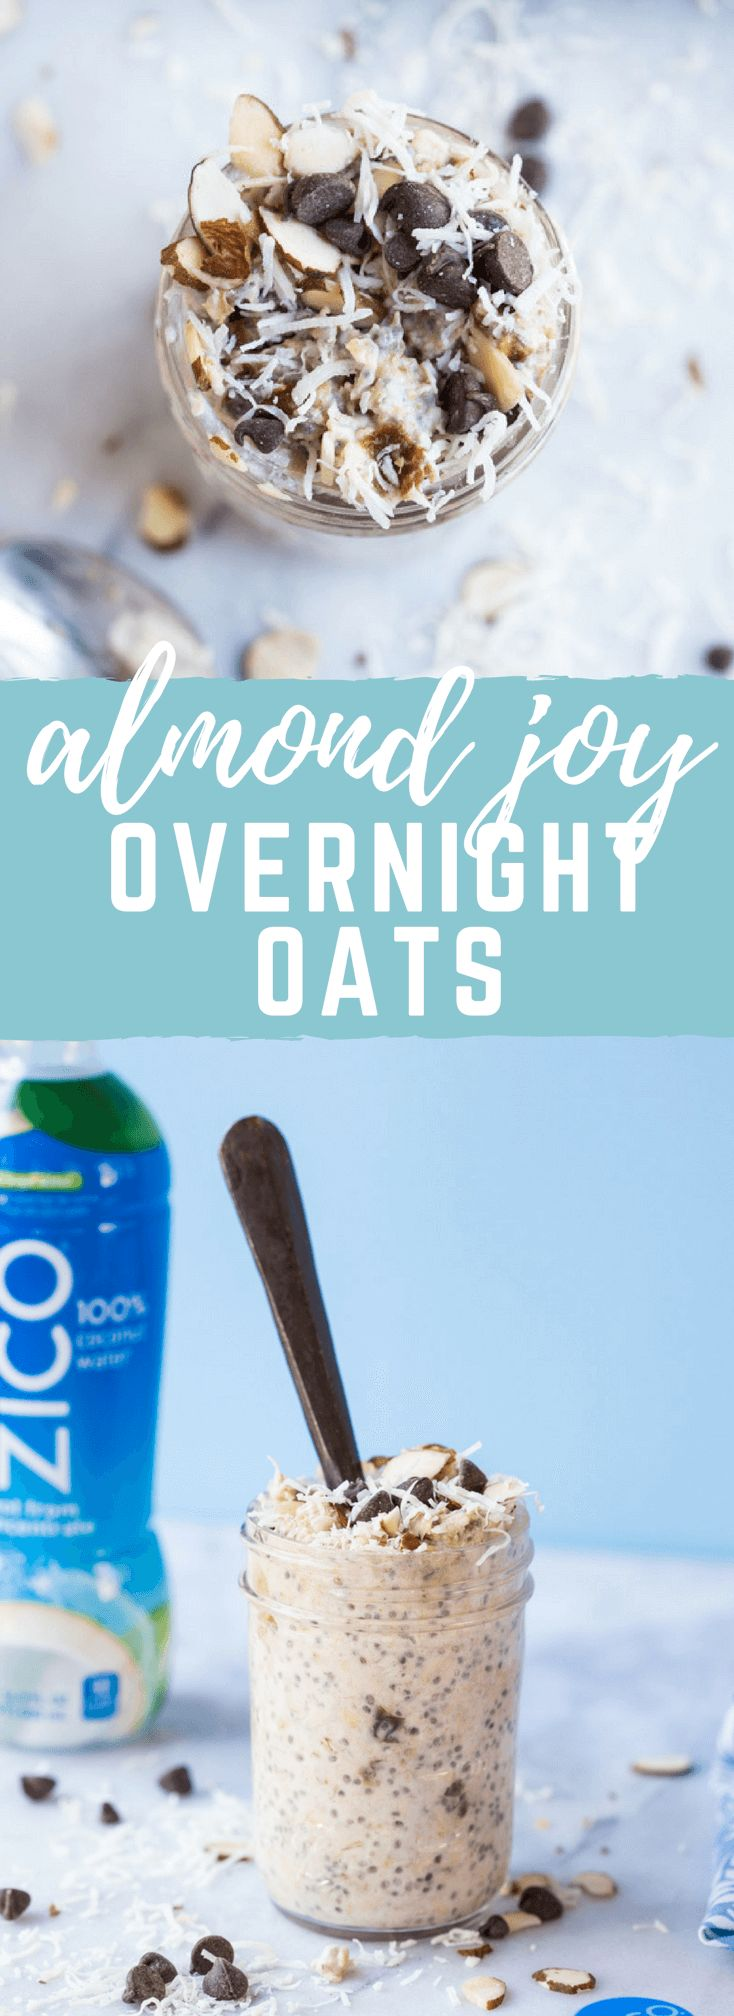 Almond Joy Overnight Oats made with coconut water.... say what??!! Yep, healthy dessert for breakfast... NO ADDED SUGAR and dairy free (well, minus the chocolate on top...but gimmeee all dat chocolate!) in collaboration with @ZICOCoconut #AD #InsideIsEverything